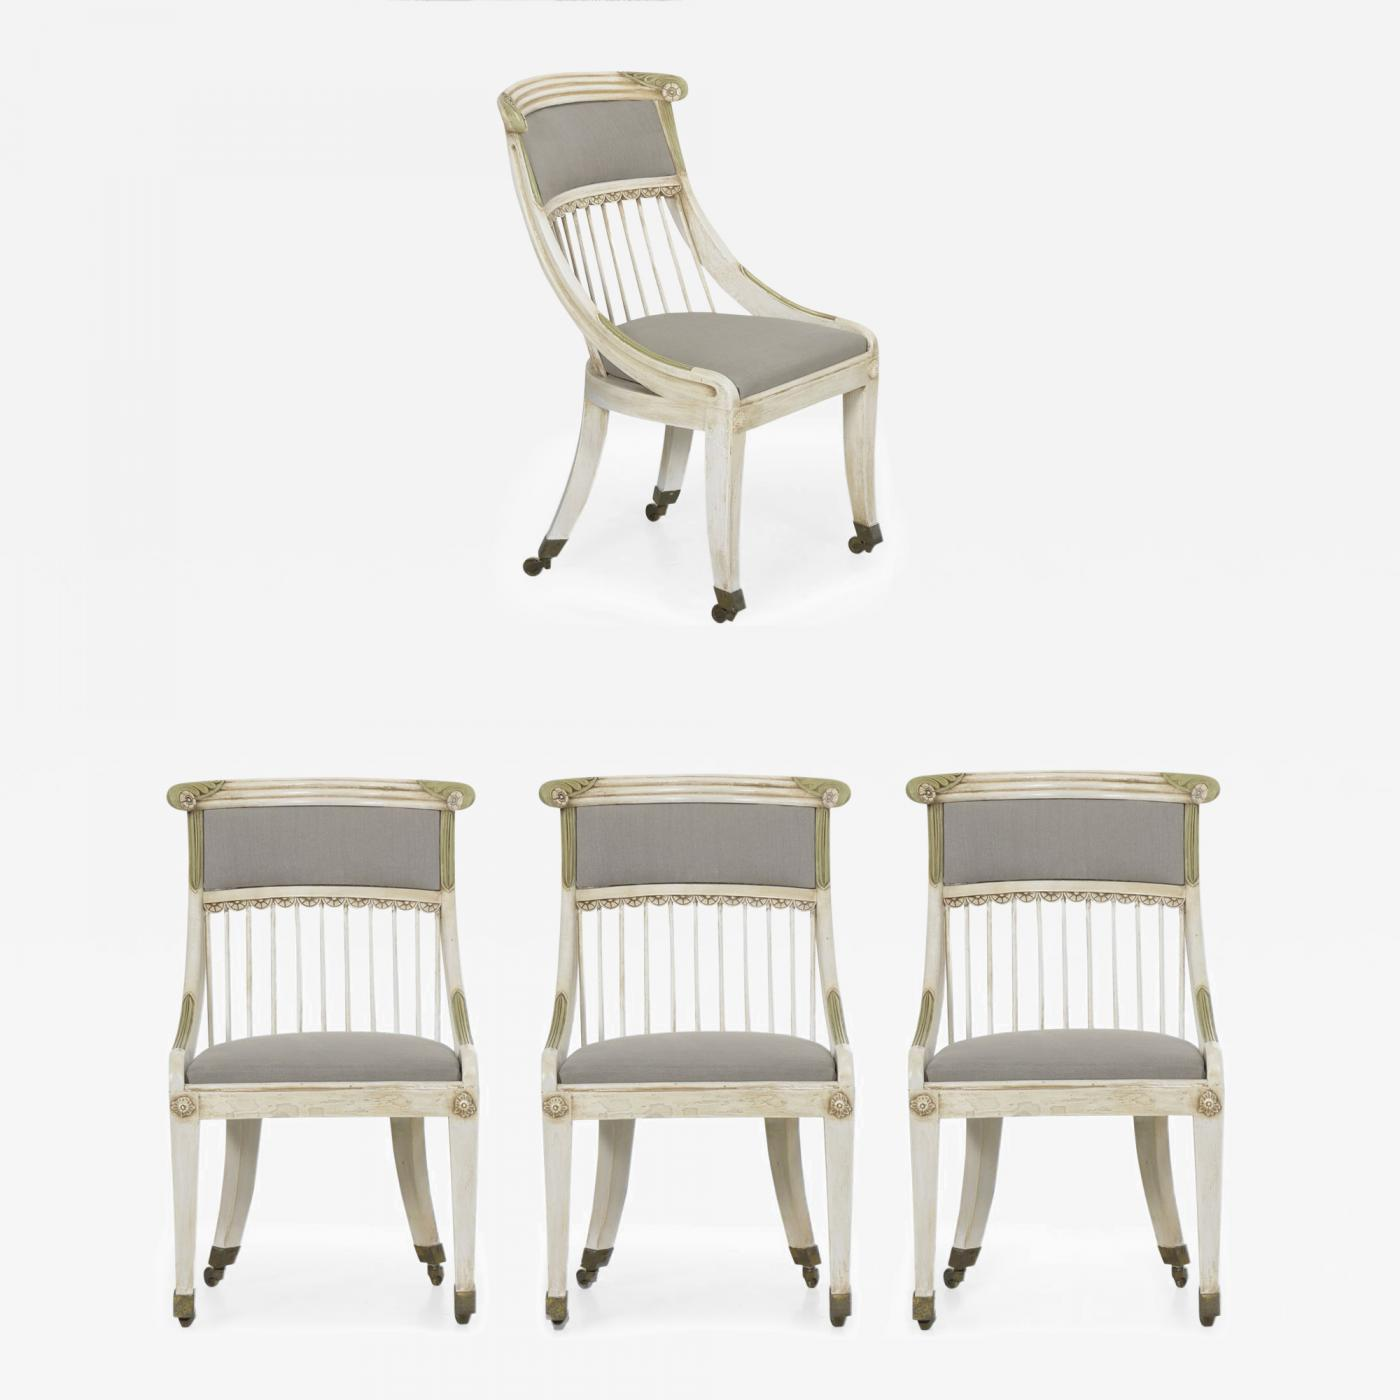 Cool Set Of Four Gustavian Style White Painted Gray Upholstered Dining Chairs Unemploymentrelief Wooden Chair Designs For Living Room Unemploymentrelieforg